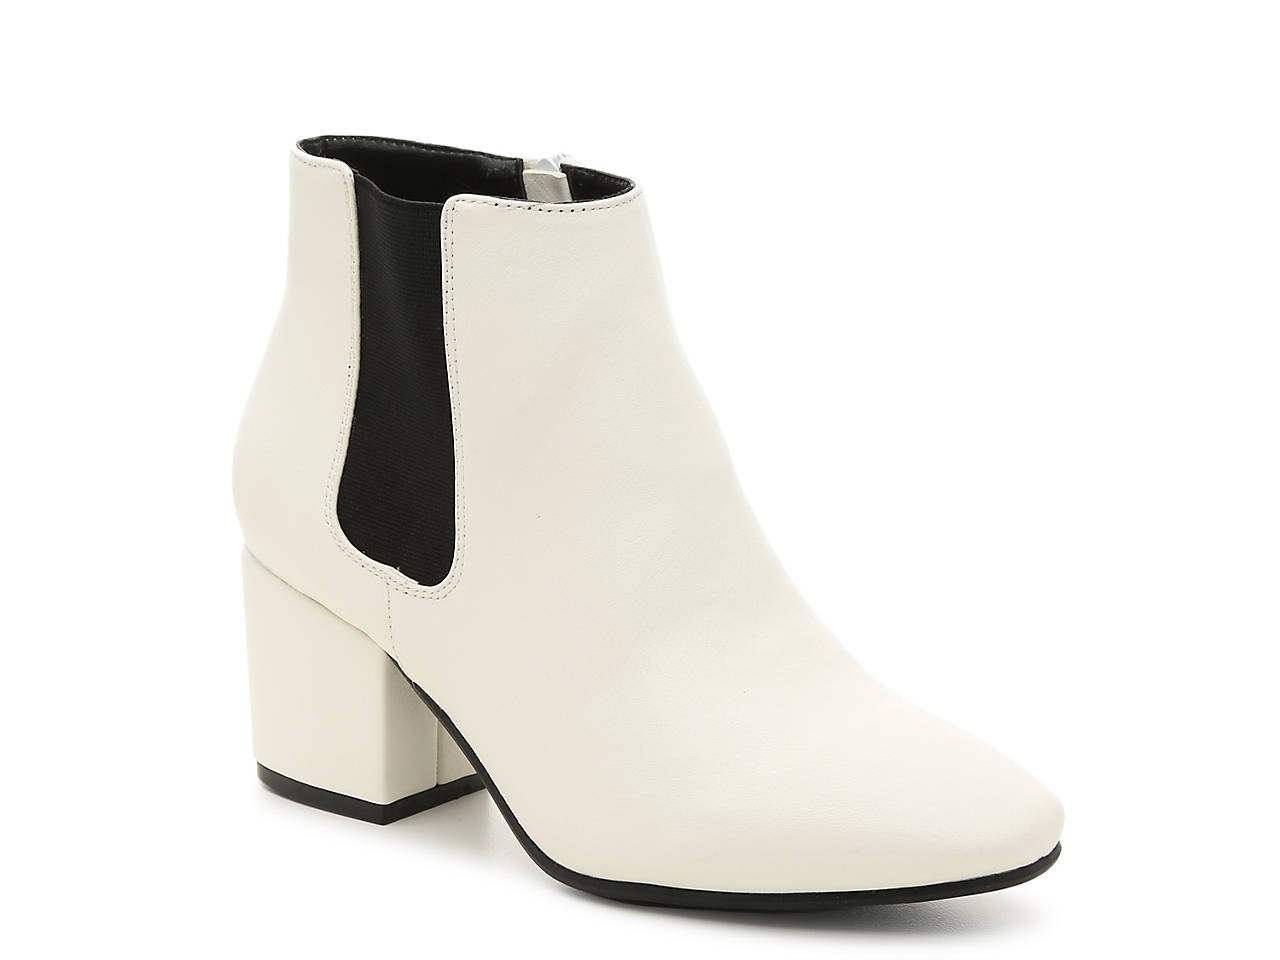 Upscale 04S Bootie